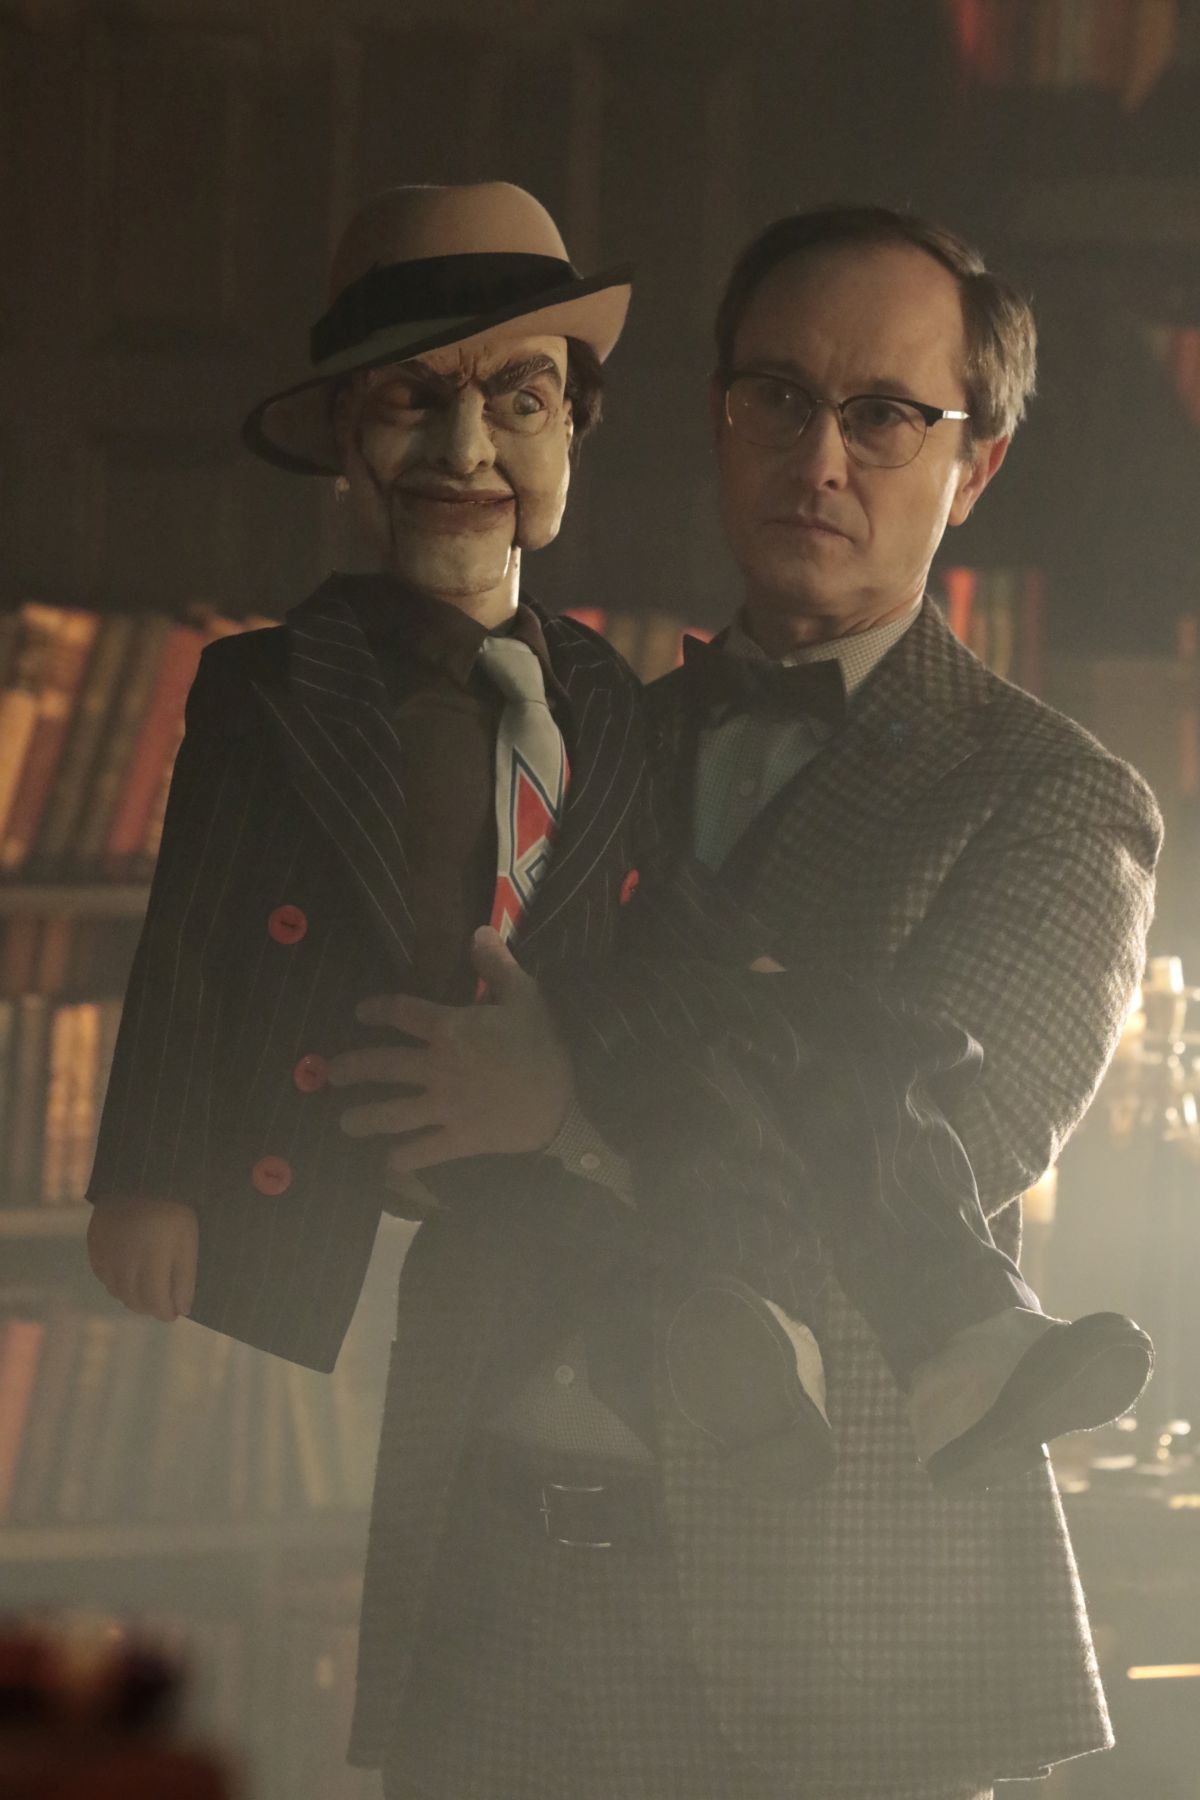 """GOTHAM: Guest star Andrew Sellon in the """"Nothing's Shocking"""" episode of GOTHAM airing Thursday, Feb. 28 (8:00-9:00 PM ET/PT) on FOX. ©2019 Fox Broadcasting Co. Cr: FOX"""